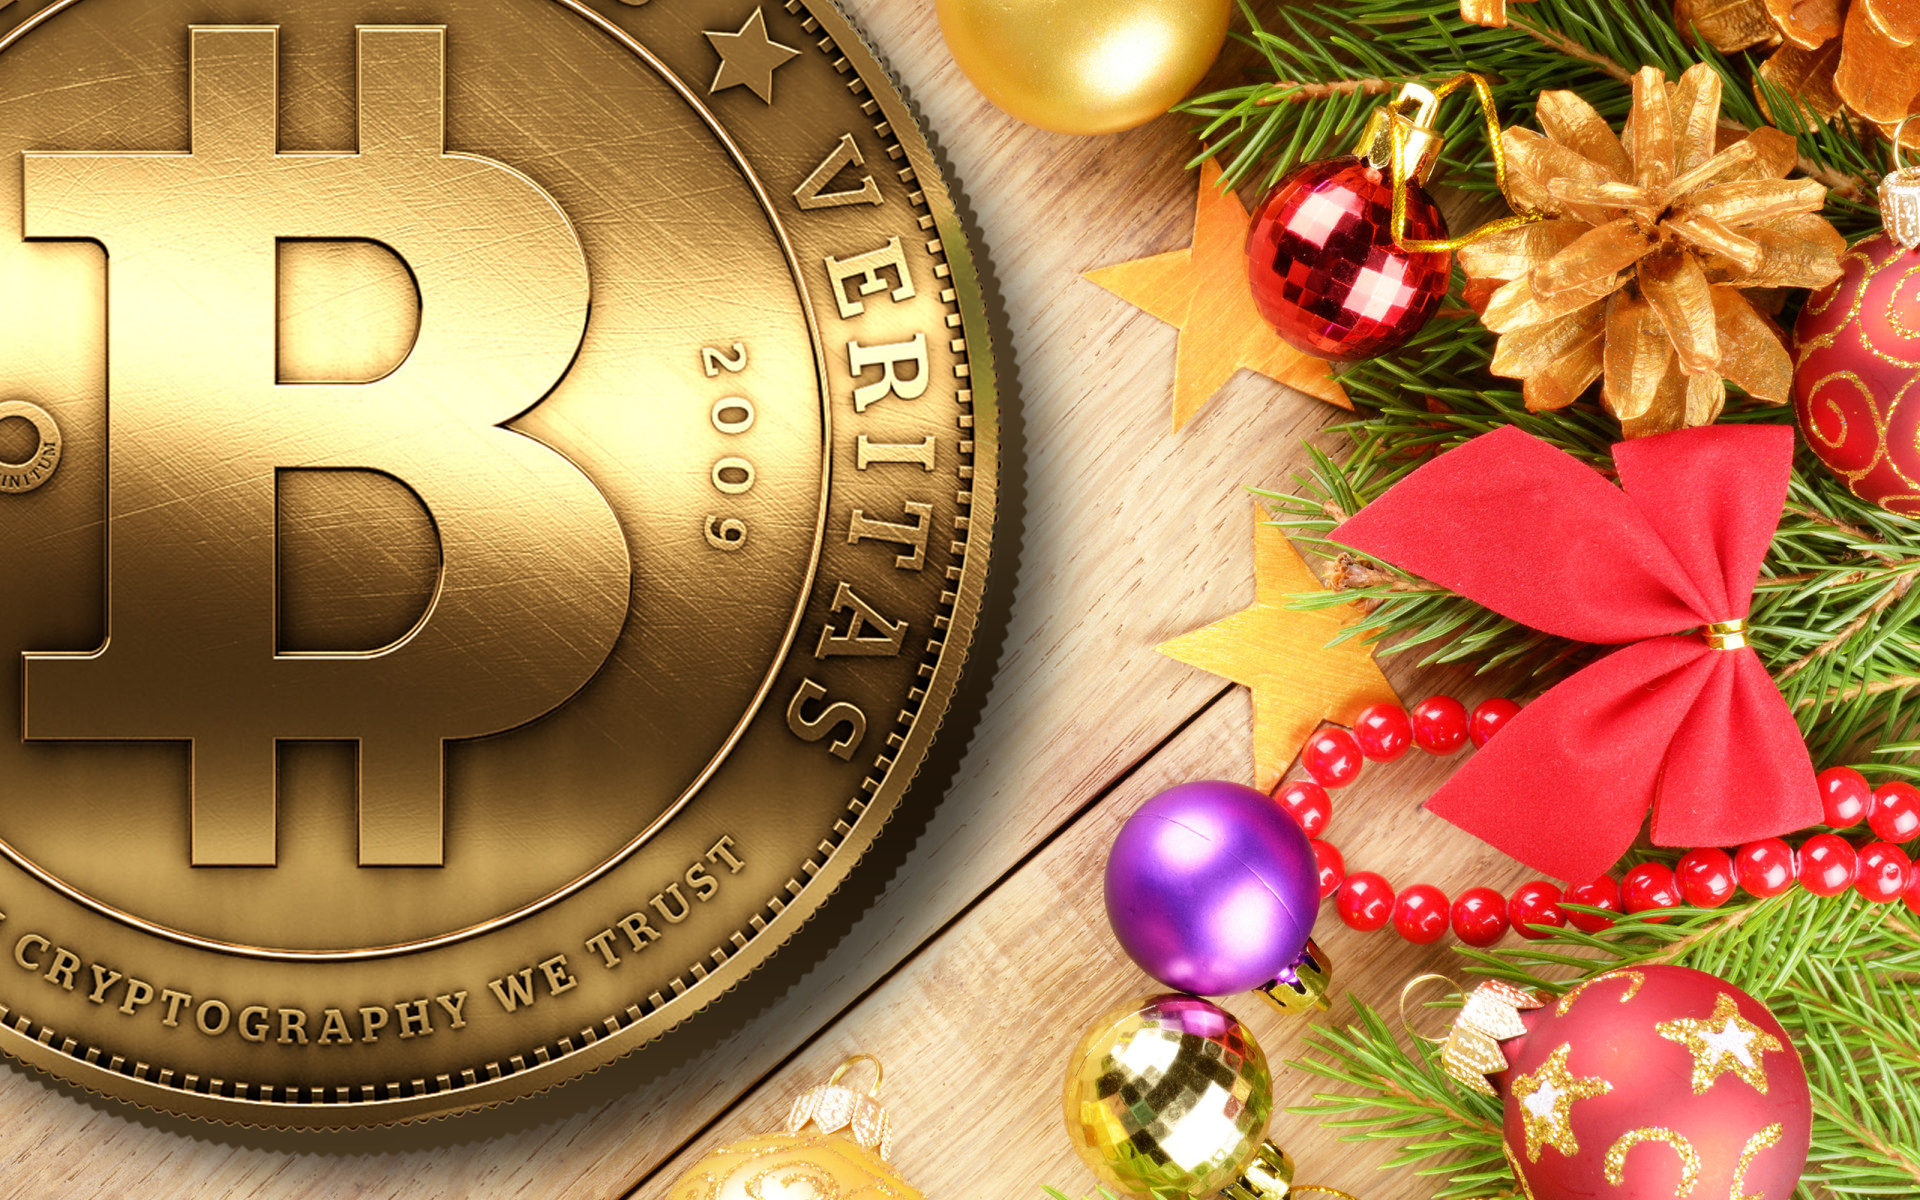 4 Ways To Give Bitcoin The Christmas Gift That Will Keep On Giving